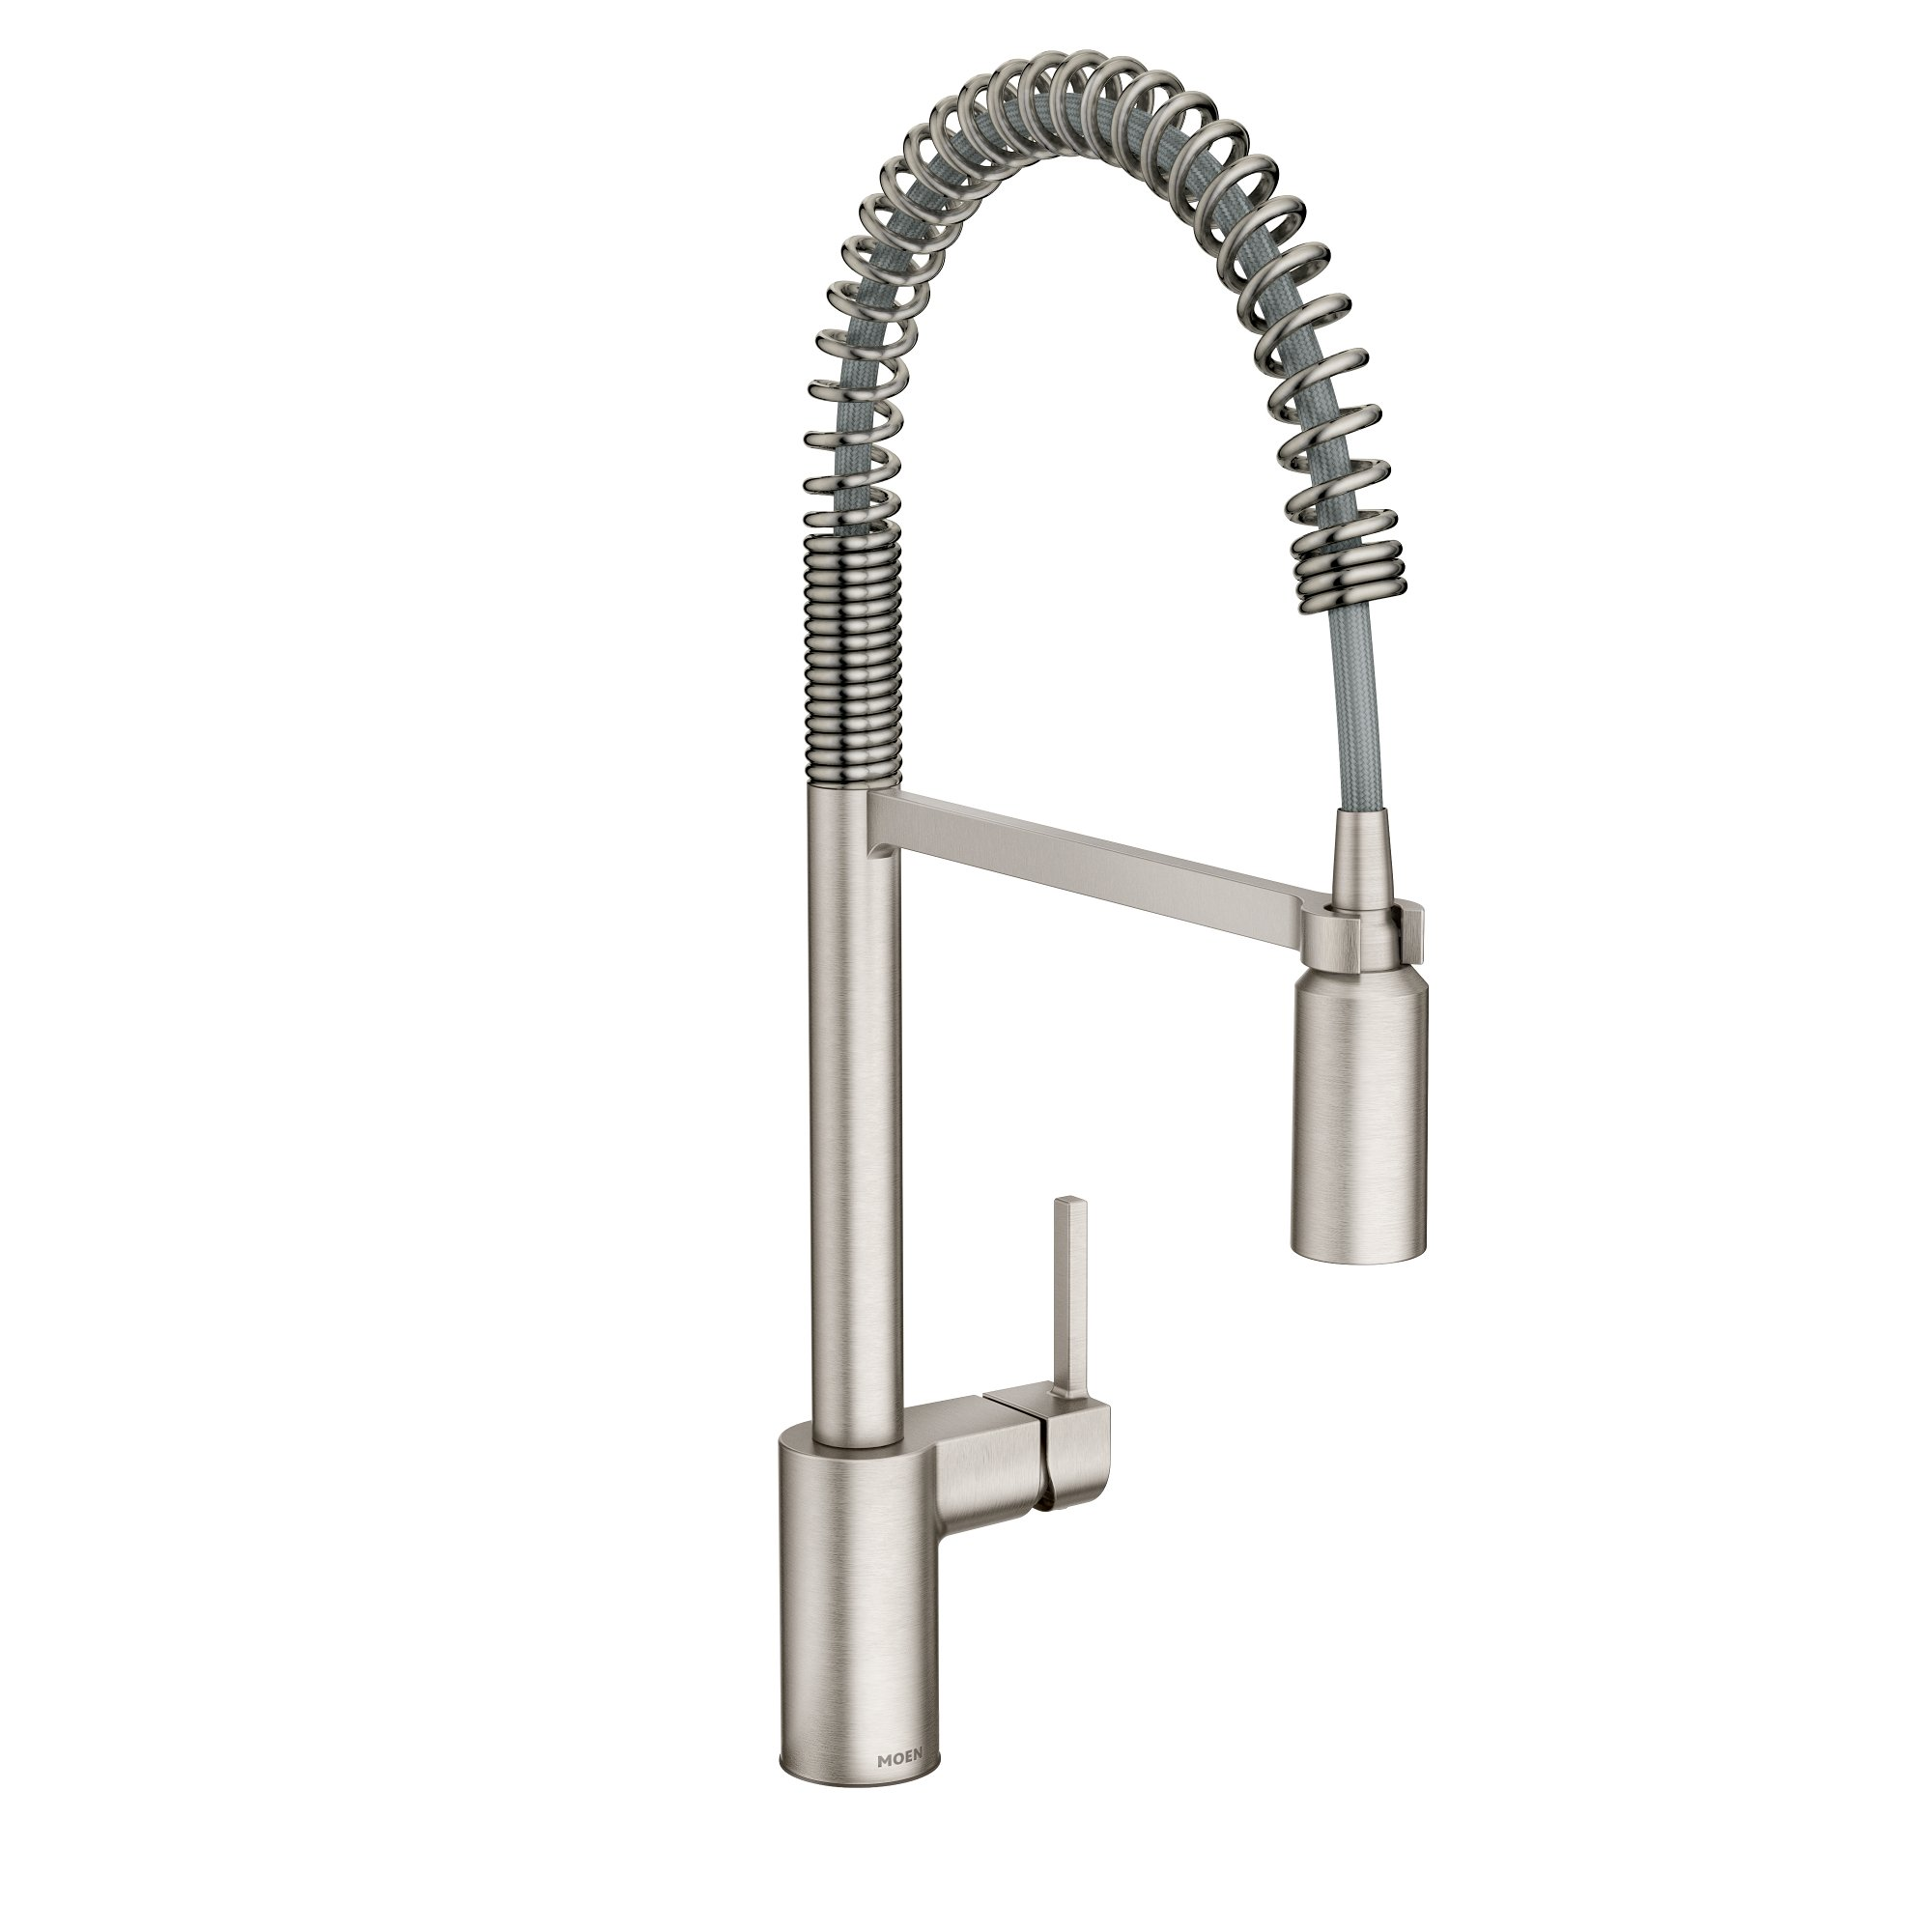 Moen 5923SRS Align One-Handle Pre-Rinse Spring Pulldown Kitchen Faucet, Spot Resist Stainless by Moen